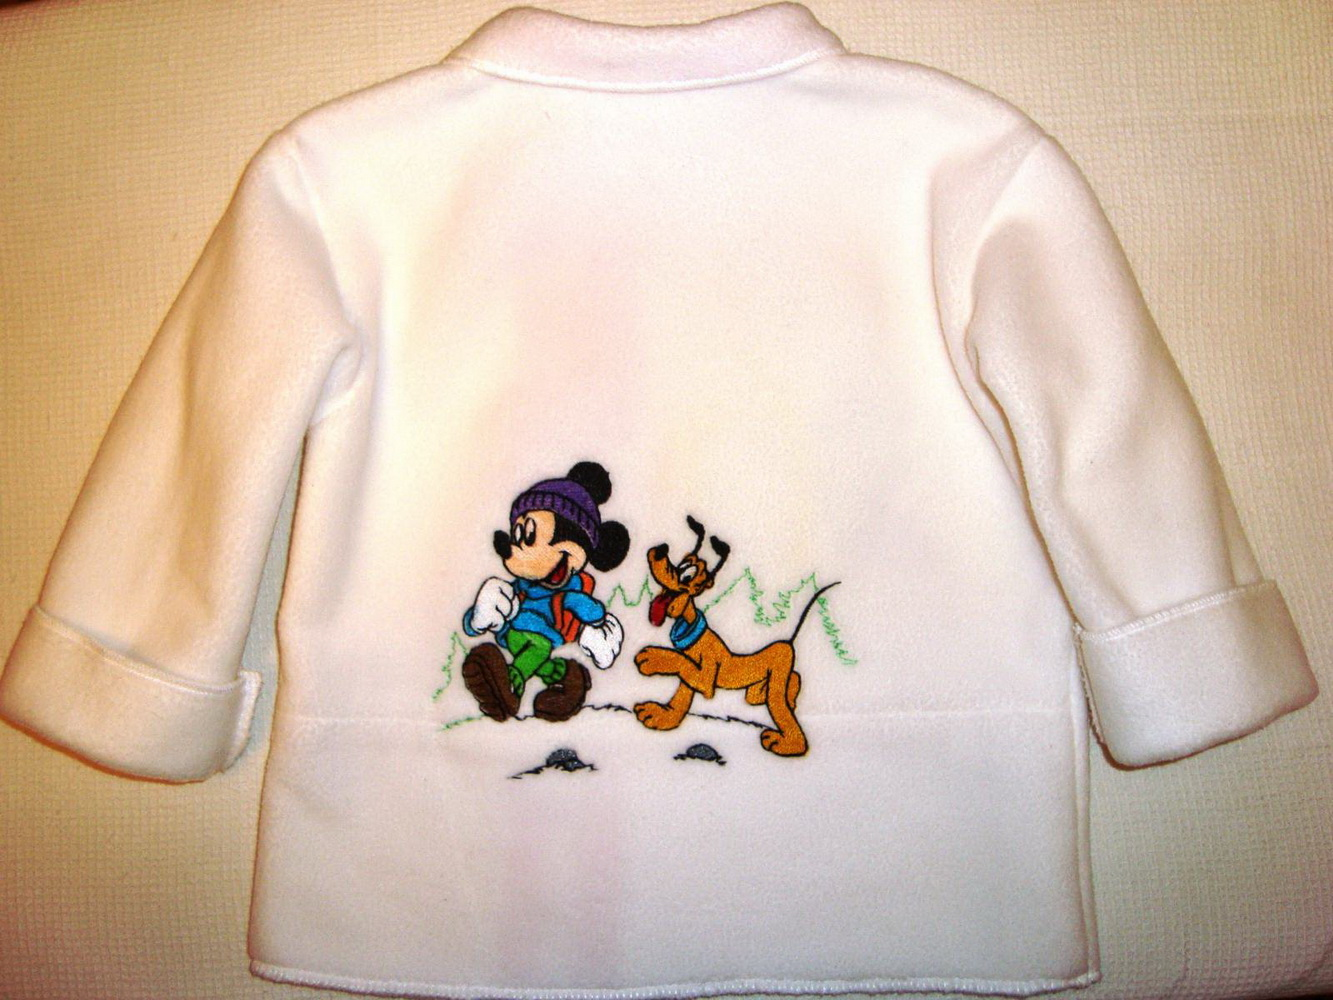 Mickey Mouse and Pluto embroidered on jacket